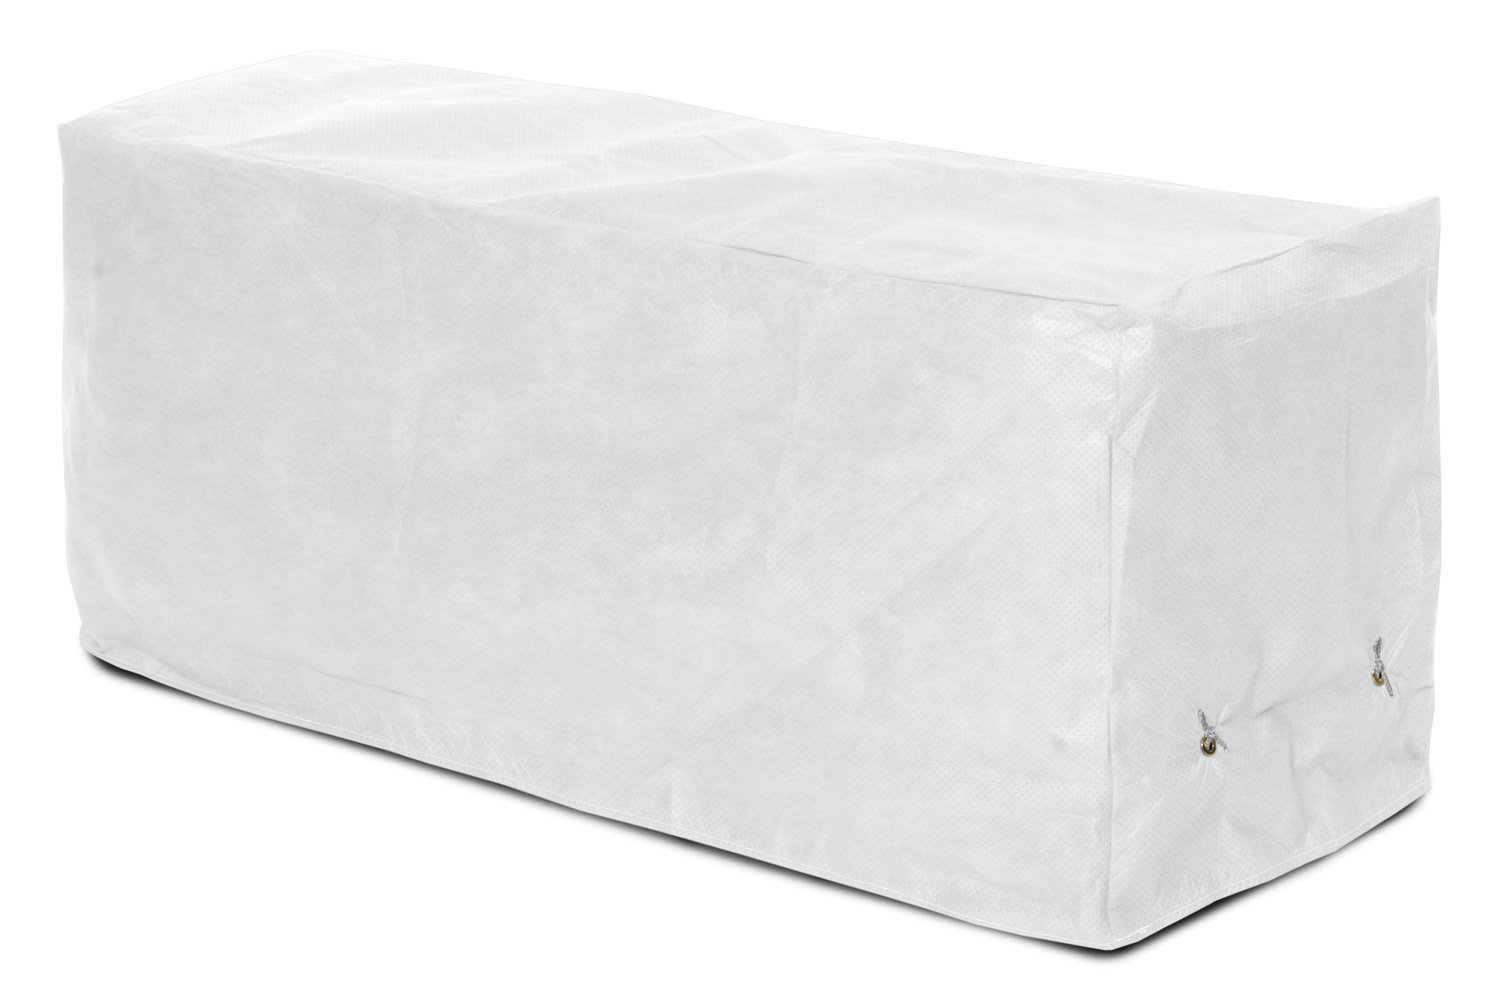 KOVERROOS SupraRoos 54207 8-Feet Bench Cover, 96-Inch Width by 25-Inch Diameter by 36-Inch Height, White